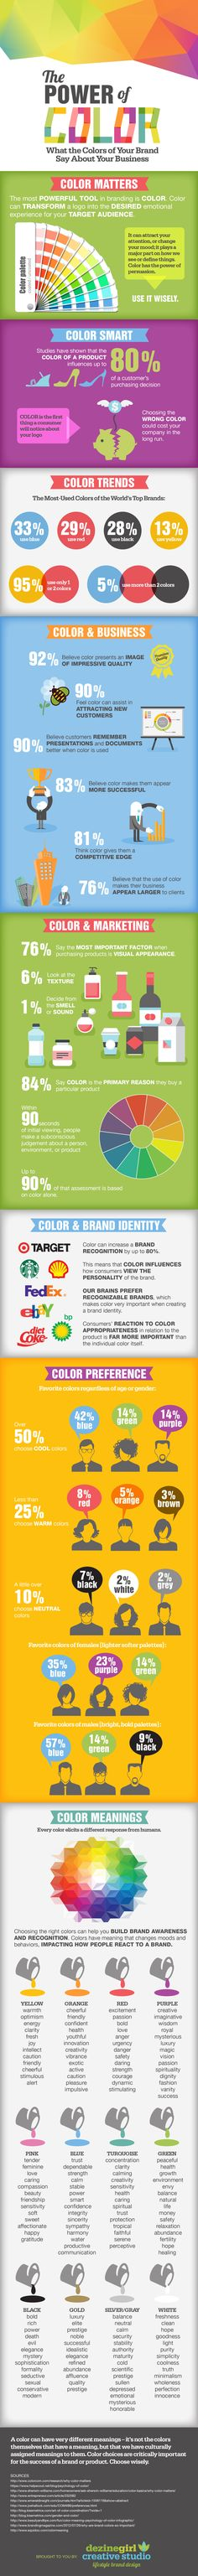 The Power of Color #infographic